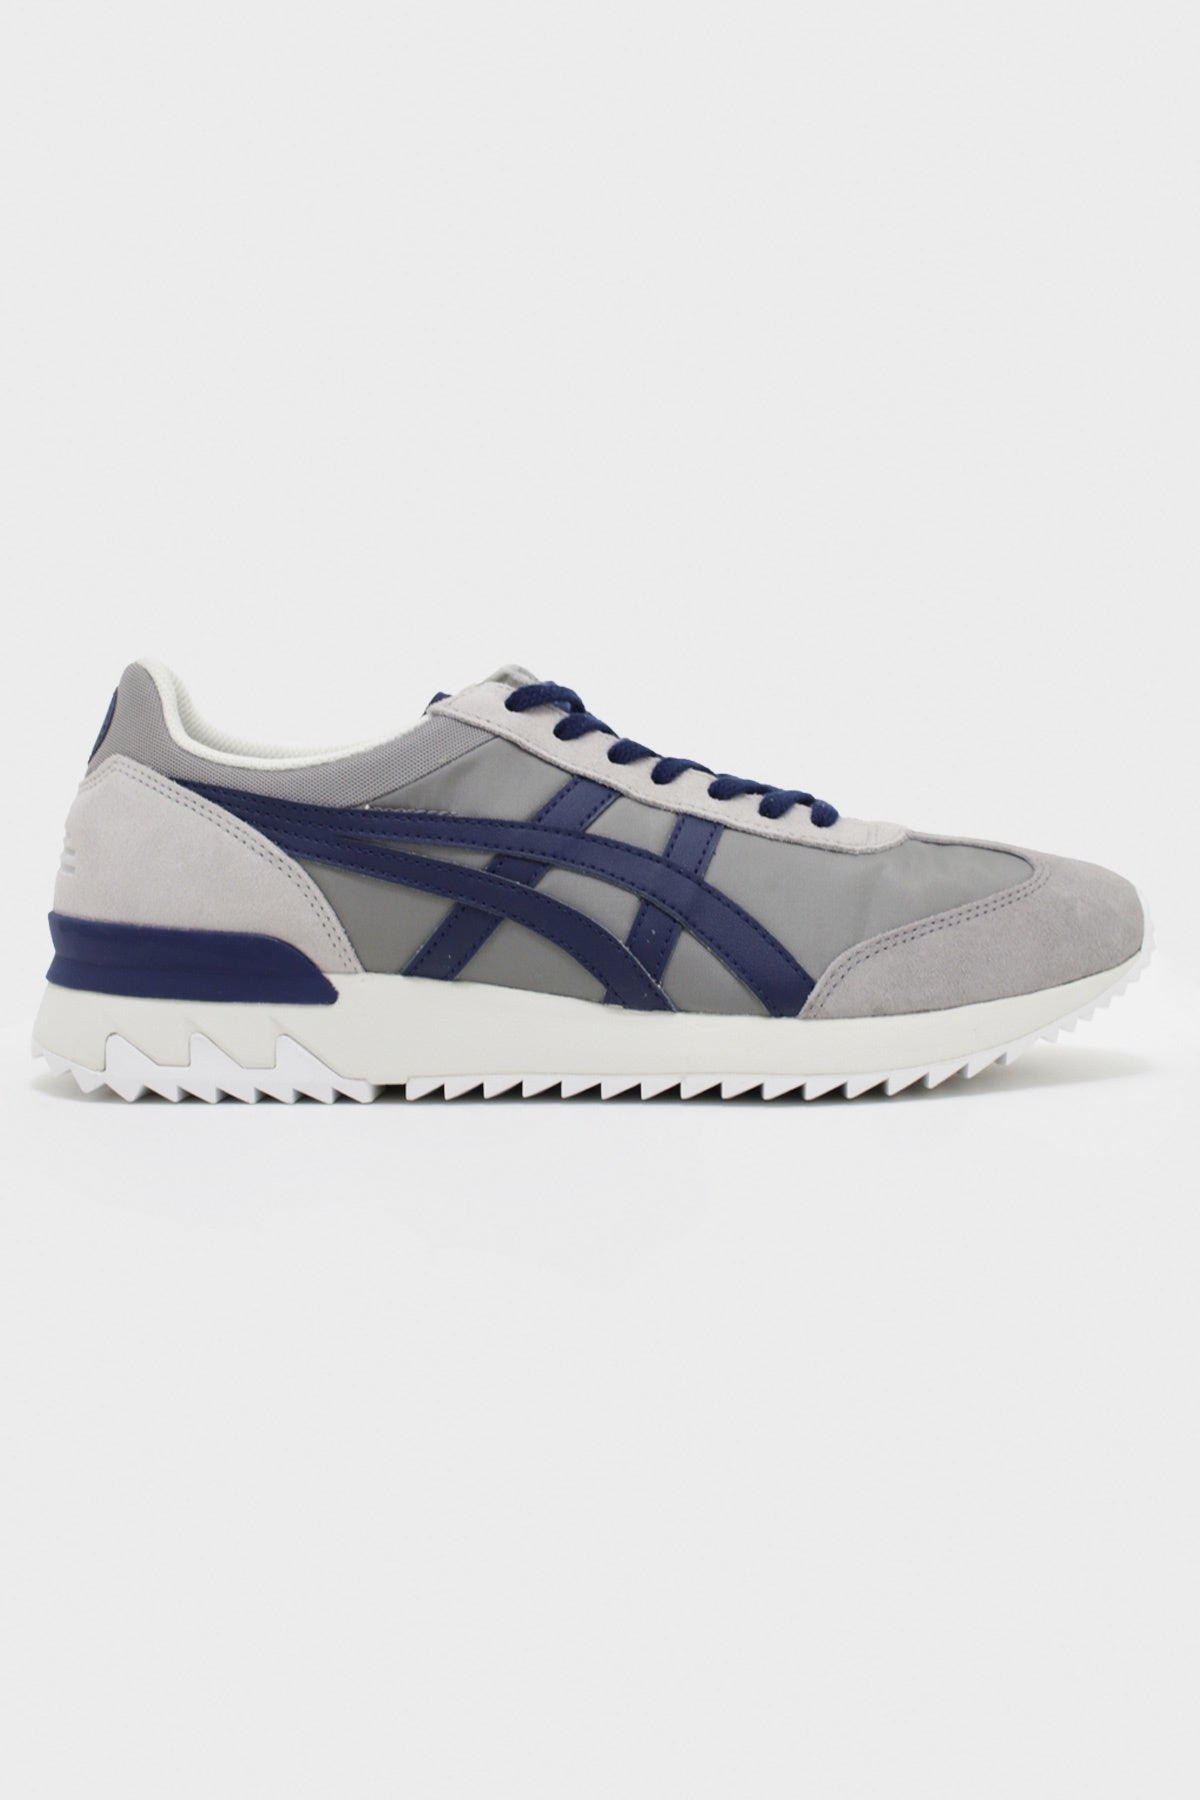 Onitsuka Tiger - California 78 EX - Steeple Grey/Peacoat - Canoe Club